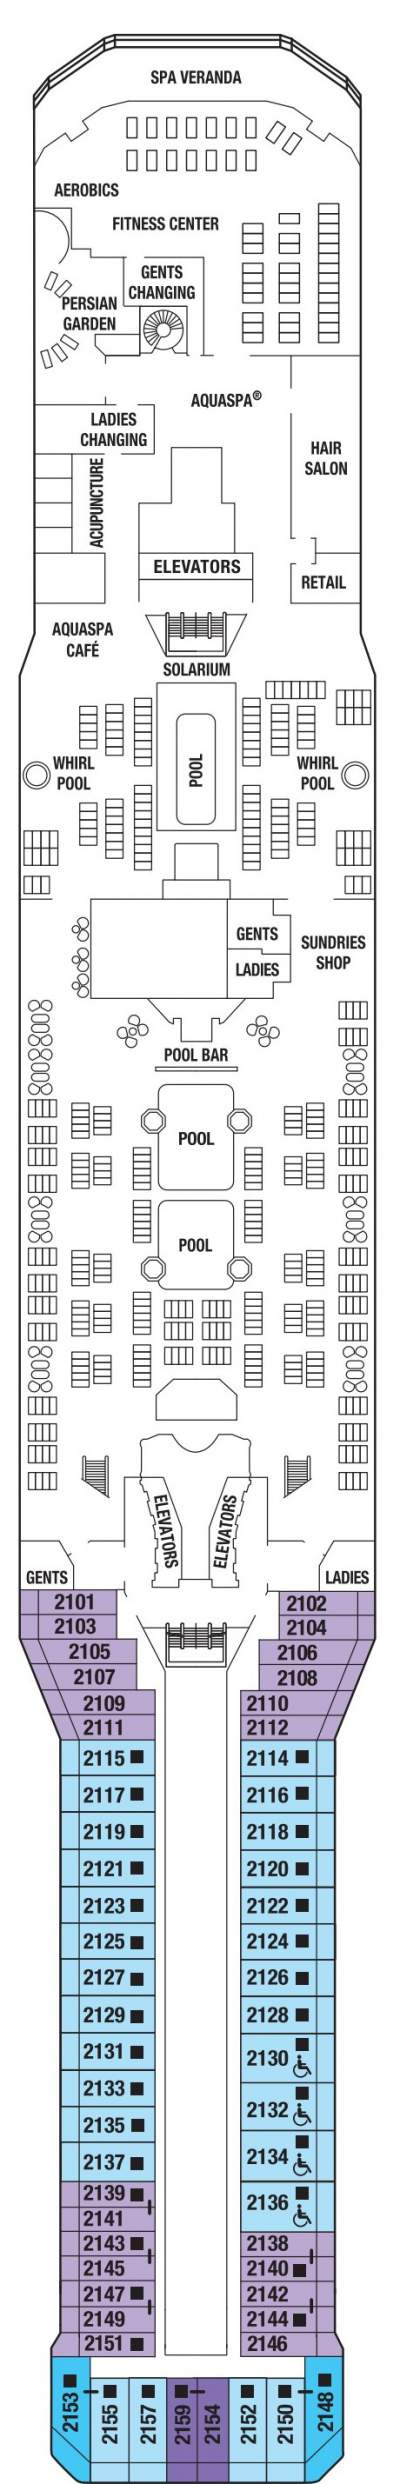 Celebrity Silhouette Sky Deck layout